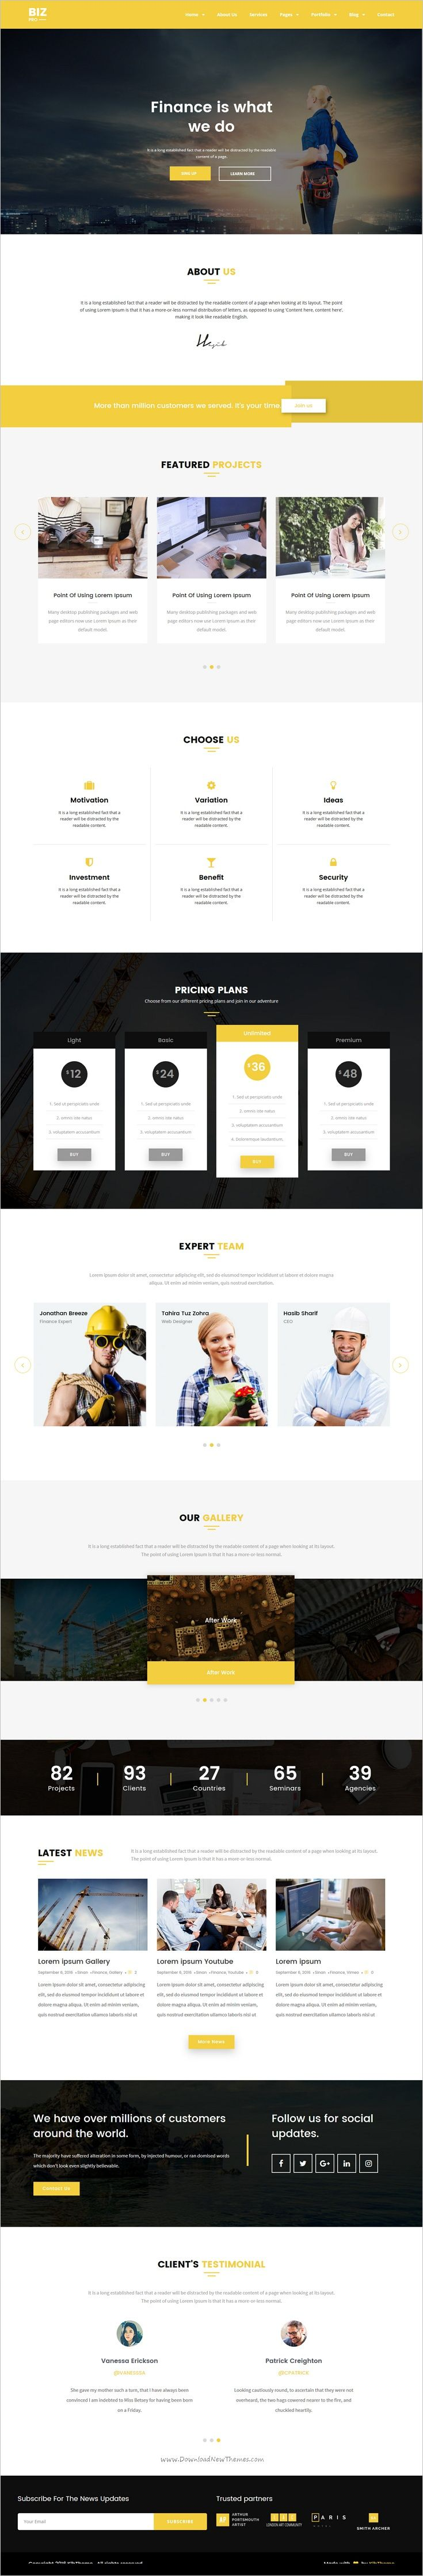 BizPro is a wonderful responsive #WordPress theme for stunning #company website #webdev with 5 multipurpose homepage layouts download now➩ https://themeforest.net/item/bizpro-multipurpose-agency-wordpress-theme/18303811?ref=Datasata